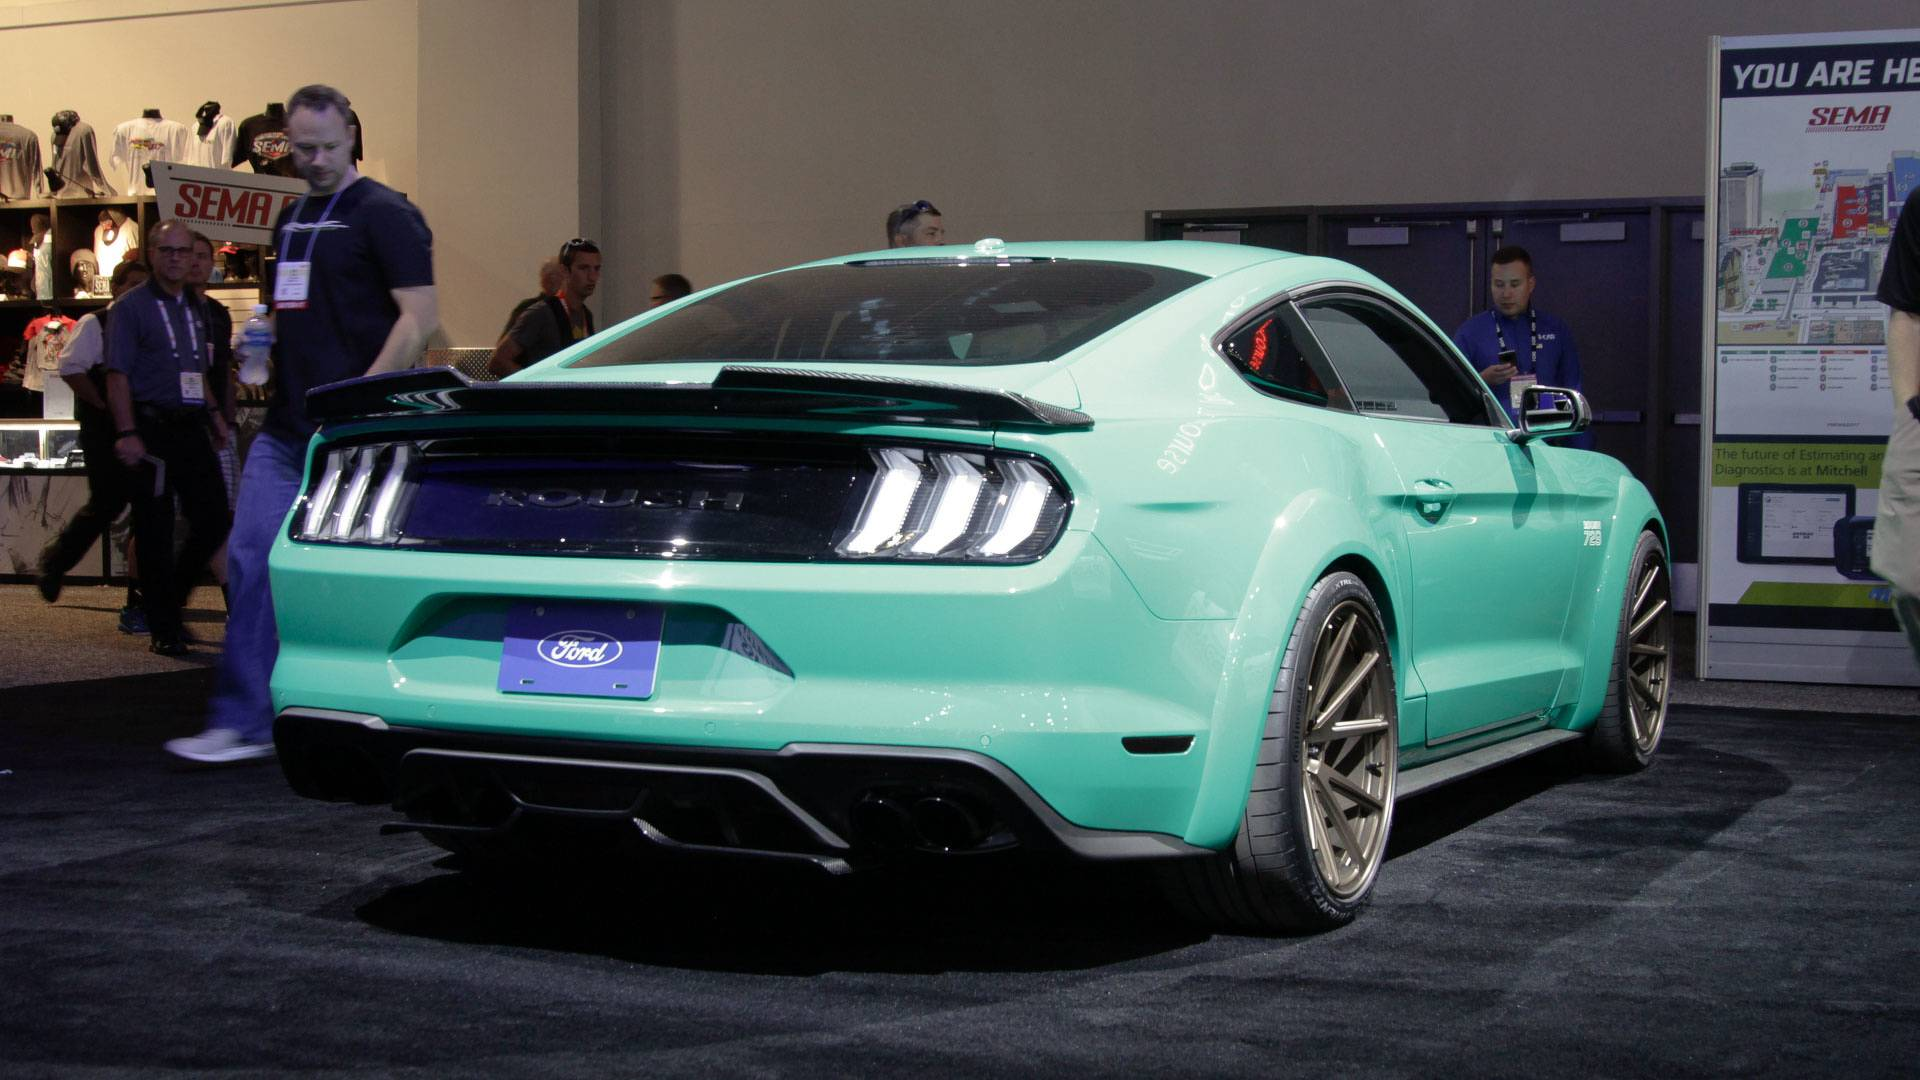 2018 ford mustang roush. 2018 ford mustang 729 wide body triathlete by roush performance | motor1.com photos s